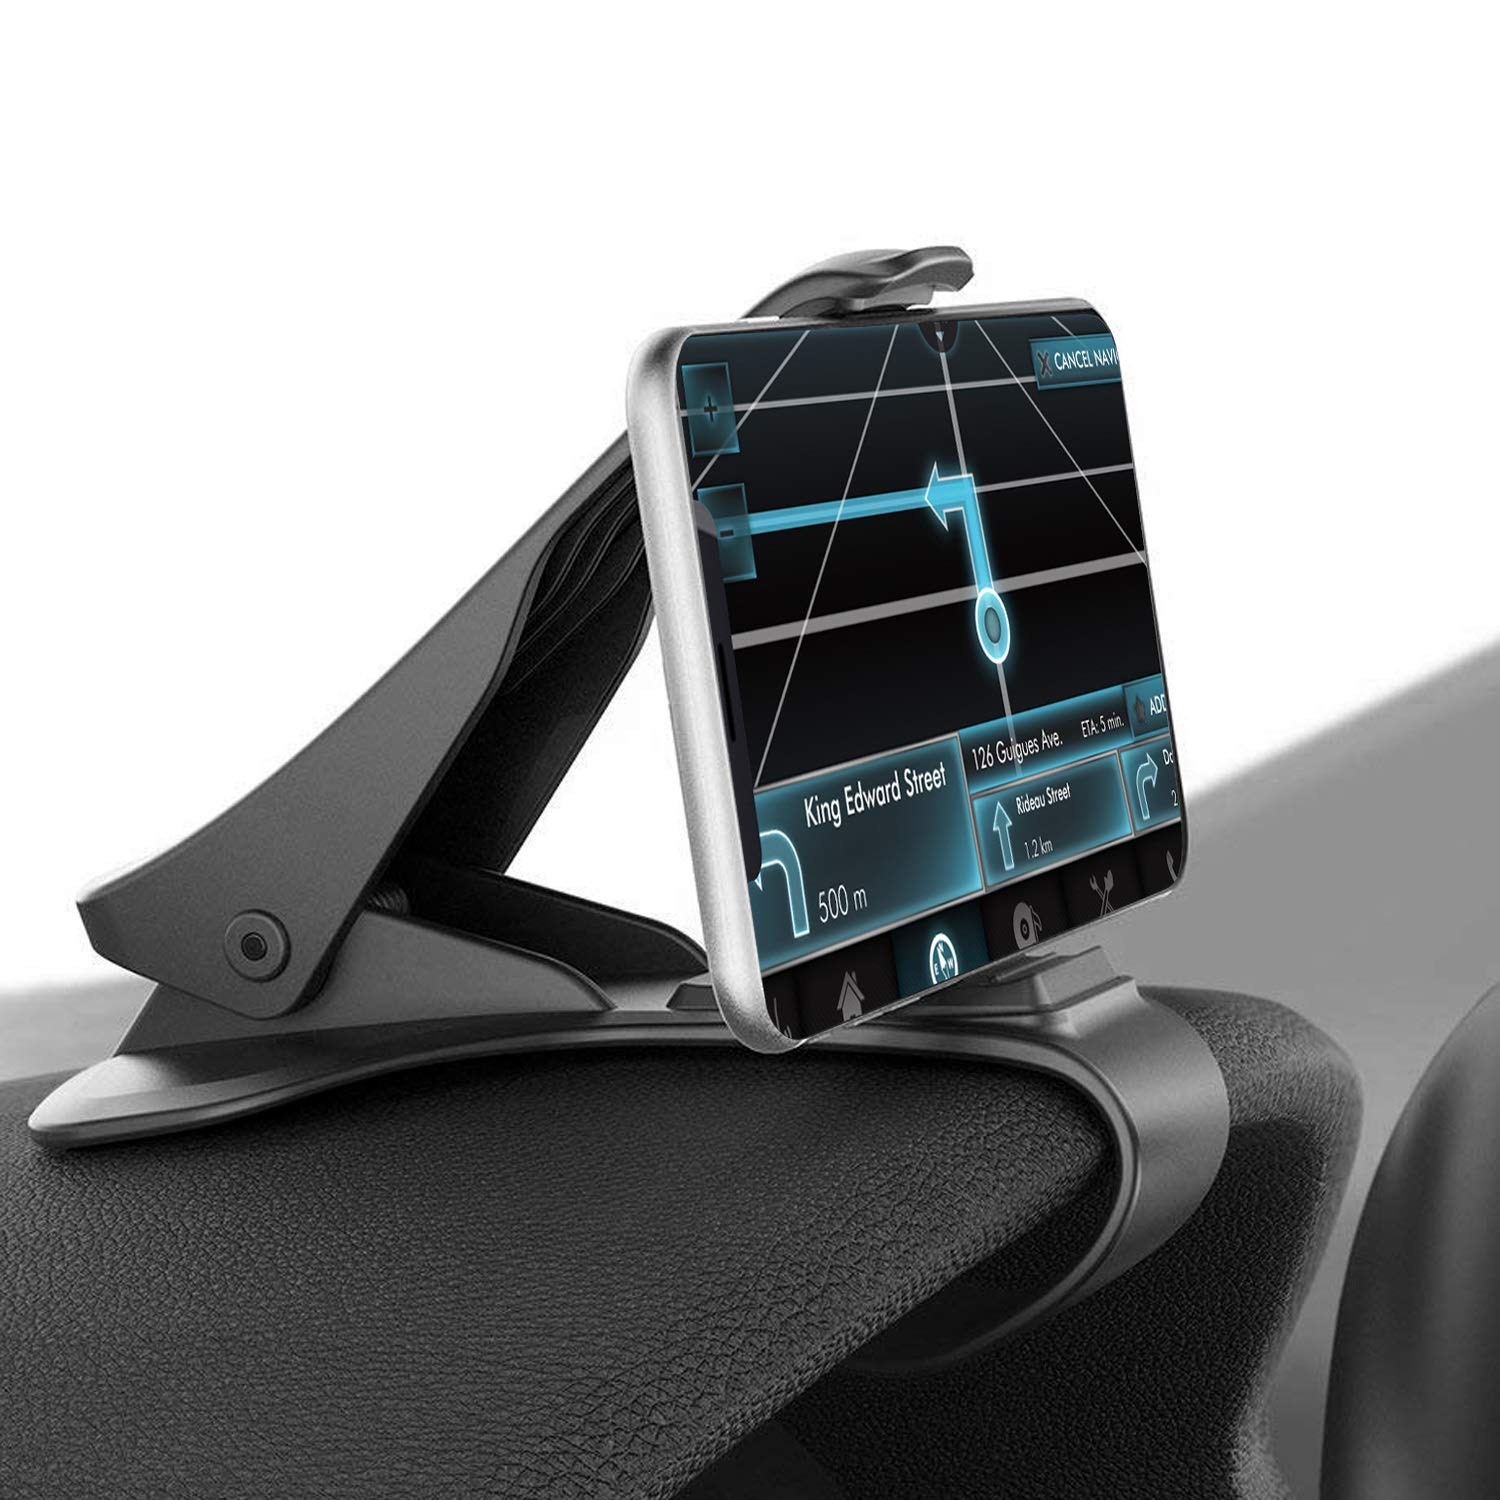 Car Phone Holder Mount, Kamisafe Car HUD Dashboard Cellphone Holder Cradle Mobile Clip Stand Compatible for iPhone Xs X 8 7 Plus Samsung S9 S8 Plus Note 9 Google Huawei Other 3.5-6.5 Inches Smartphone